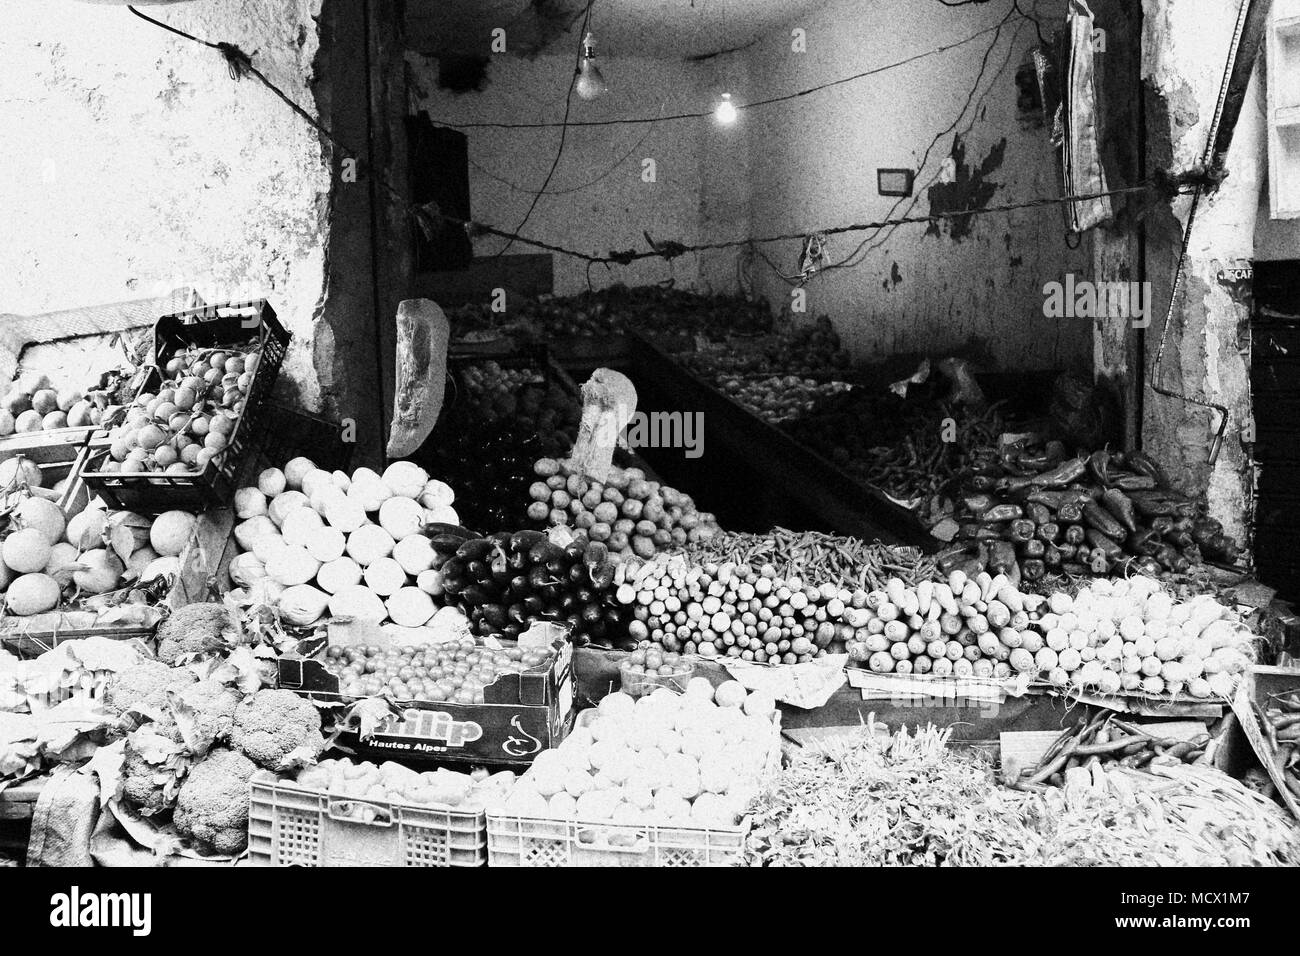 Old fashioned black and white picture of a market stall having vegetables on sale at the old souk in Casablanca, Morocco - Stock Image